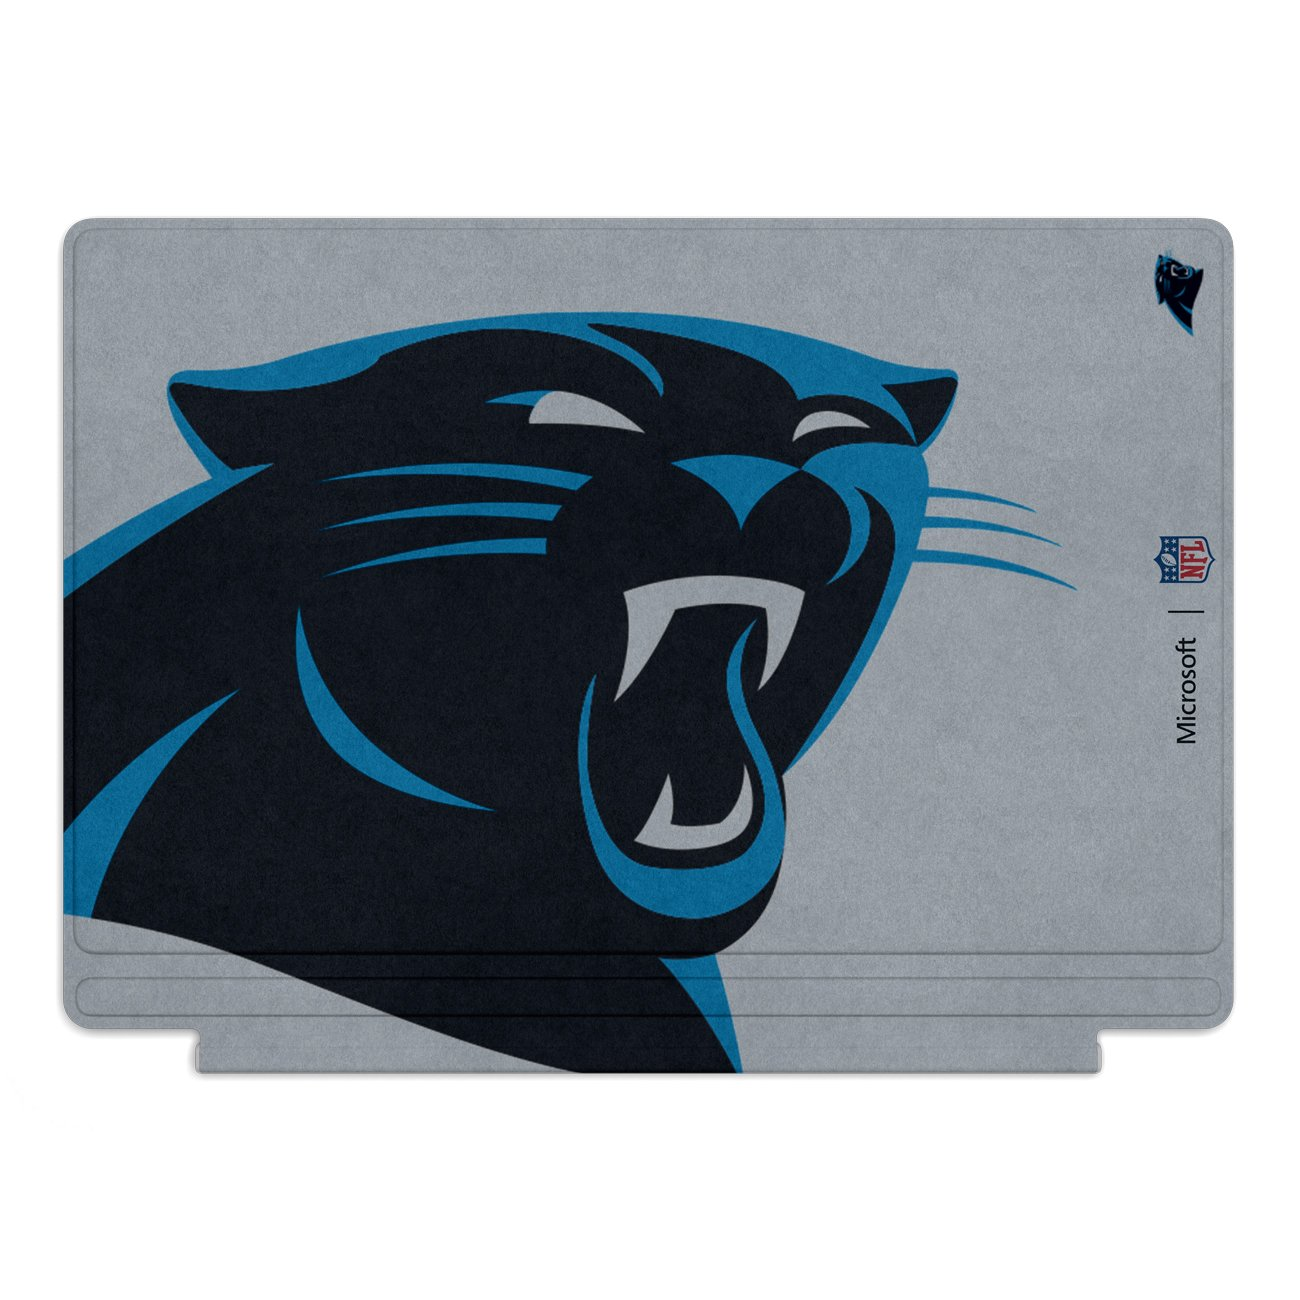 Microsoft Surface Pro 4 Special Edition NFL Type Cover (Carolina Panthers)